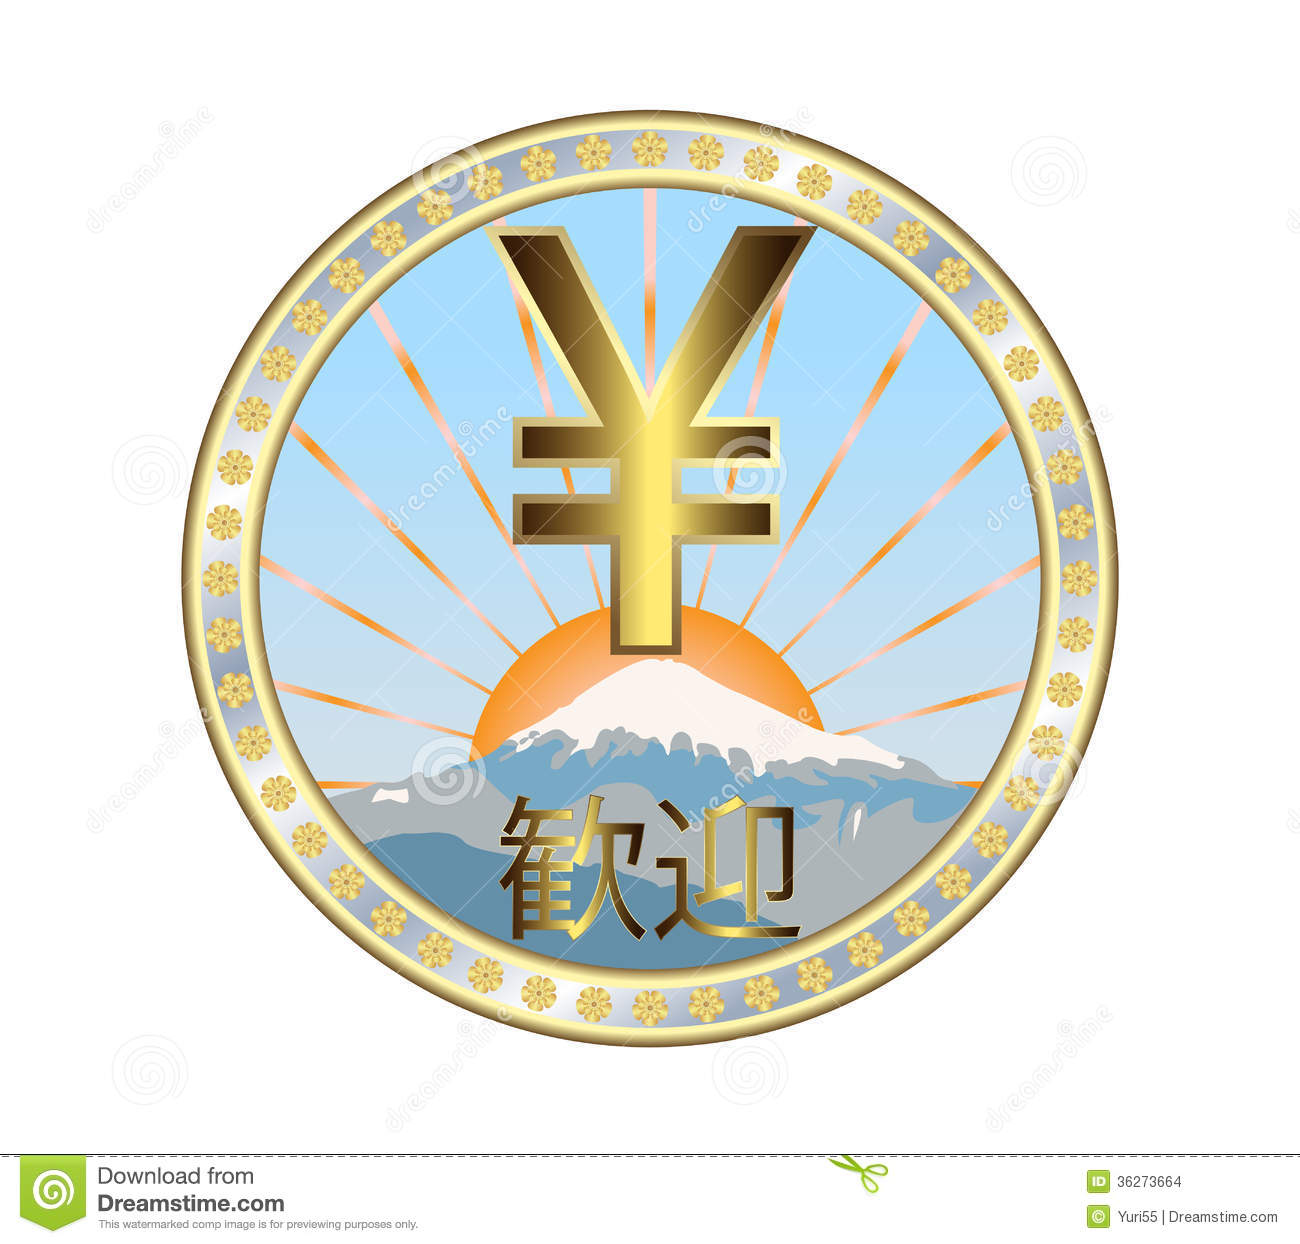 Japanese Yen Symbol Stock Vector Illustration Of Background 36273664